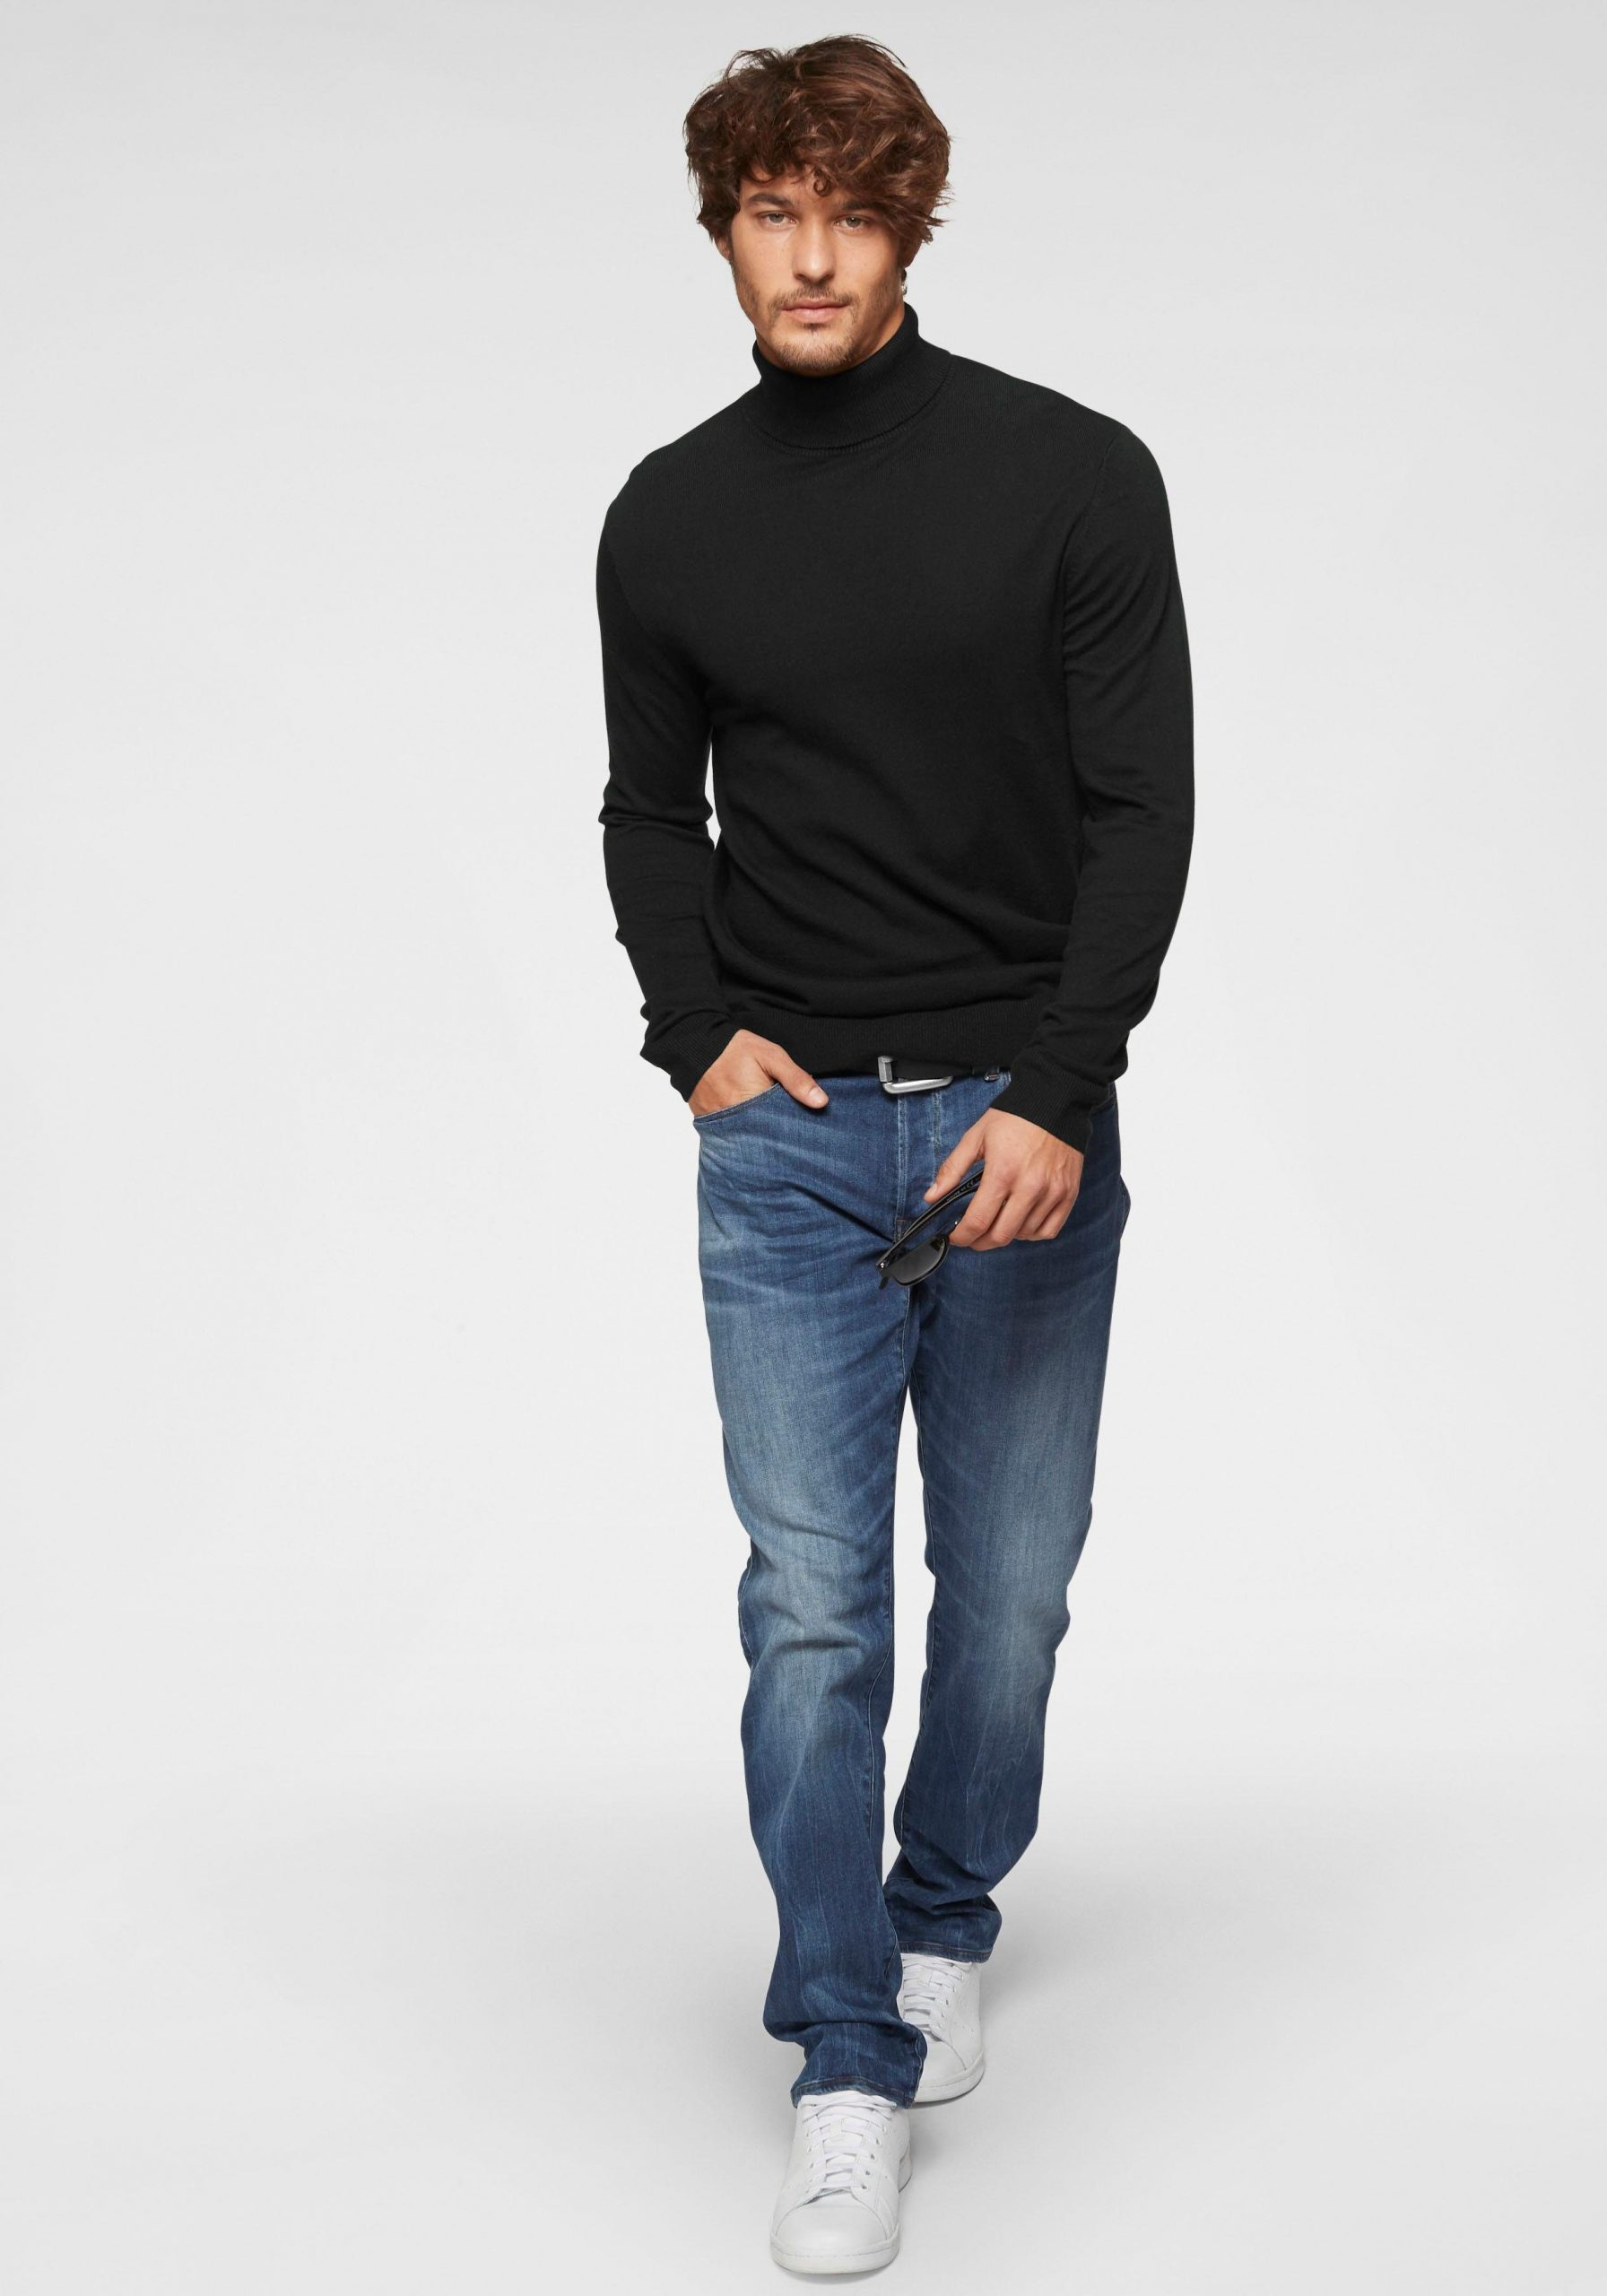 Casual outfit coltrui zwart